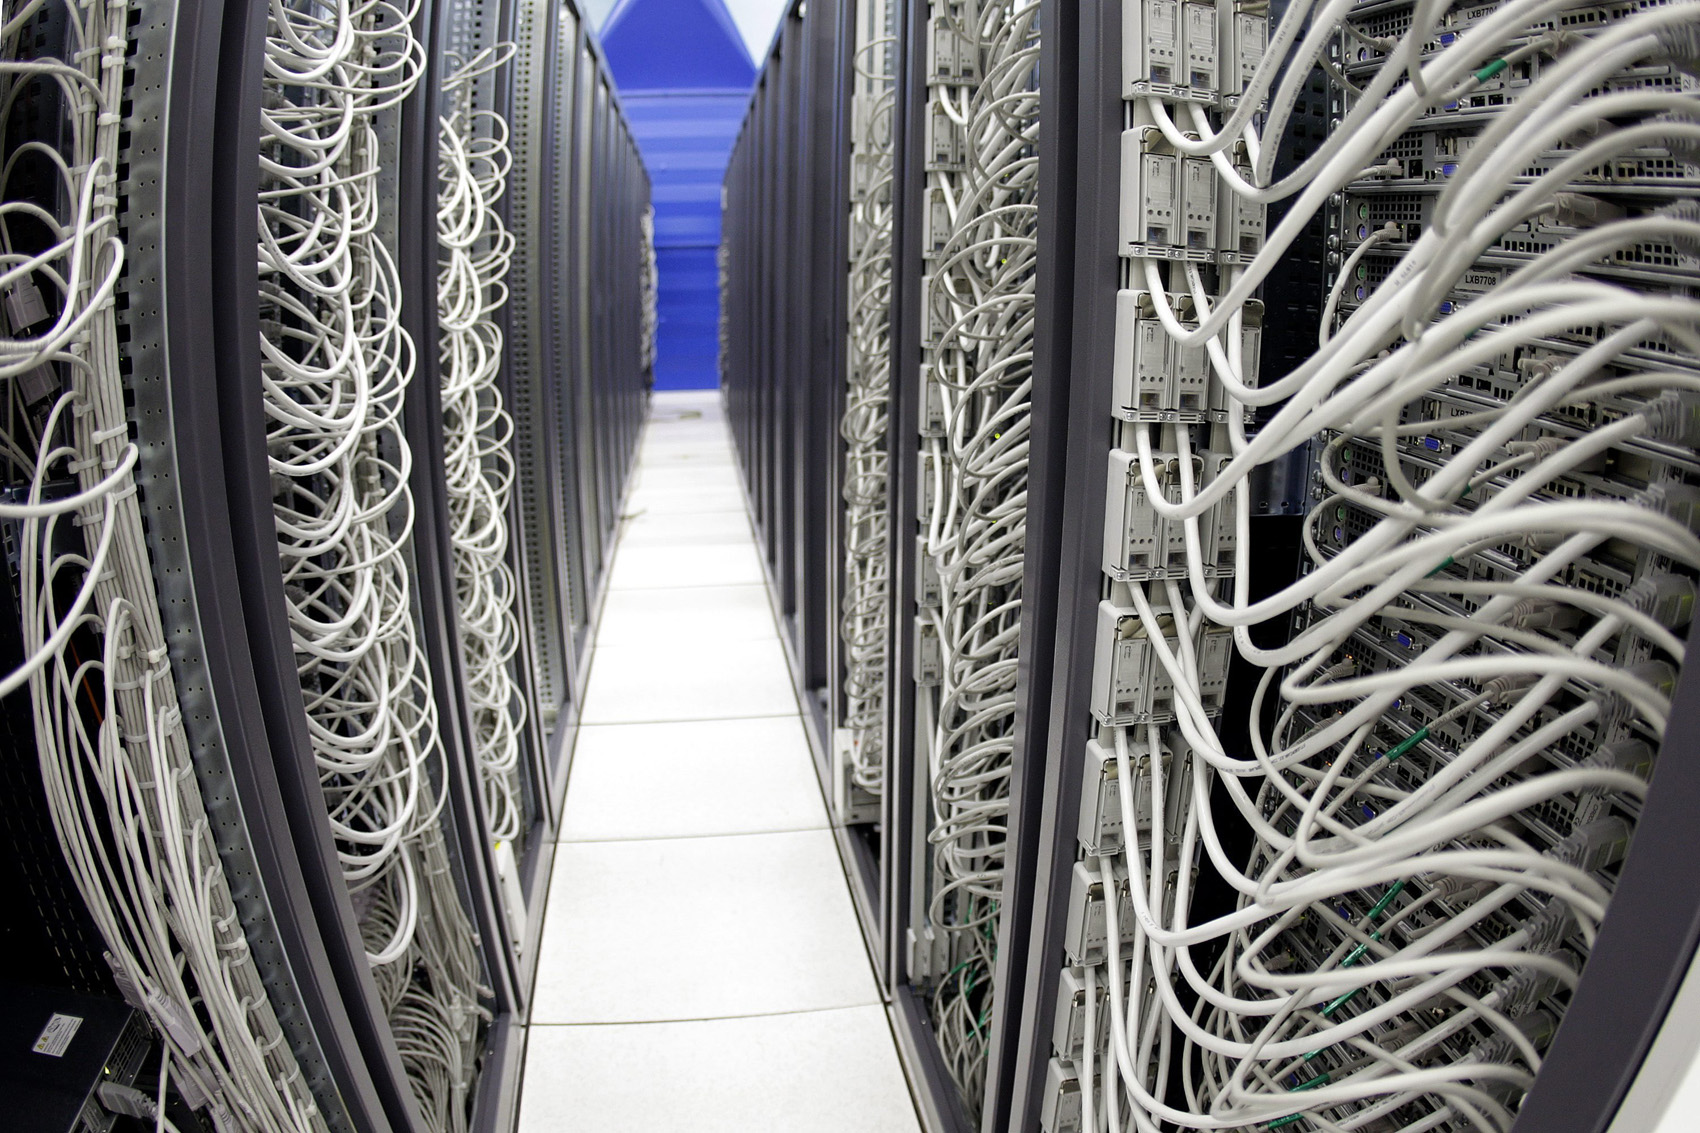 Cables connect server racks in the computer centre of the Cern, the European Organization for Nuclear Research, near Geneva, on Thursday, Oct. 2, 2008. (AP Photo/KEYSTONE/Martial Trezzini)